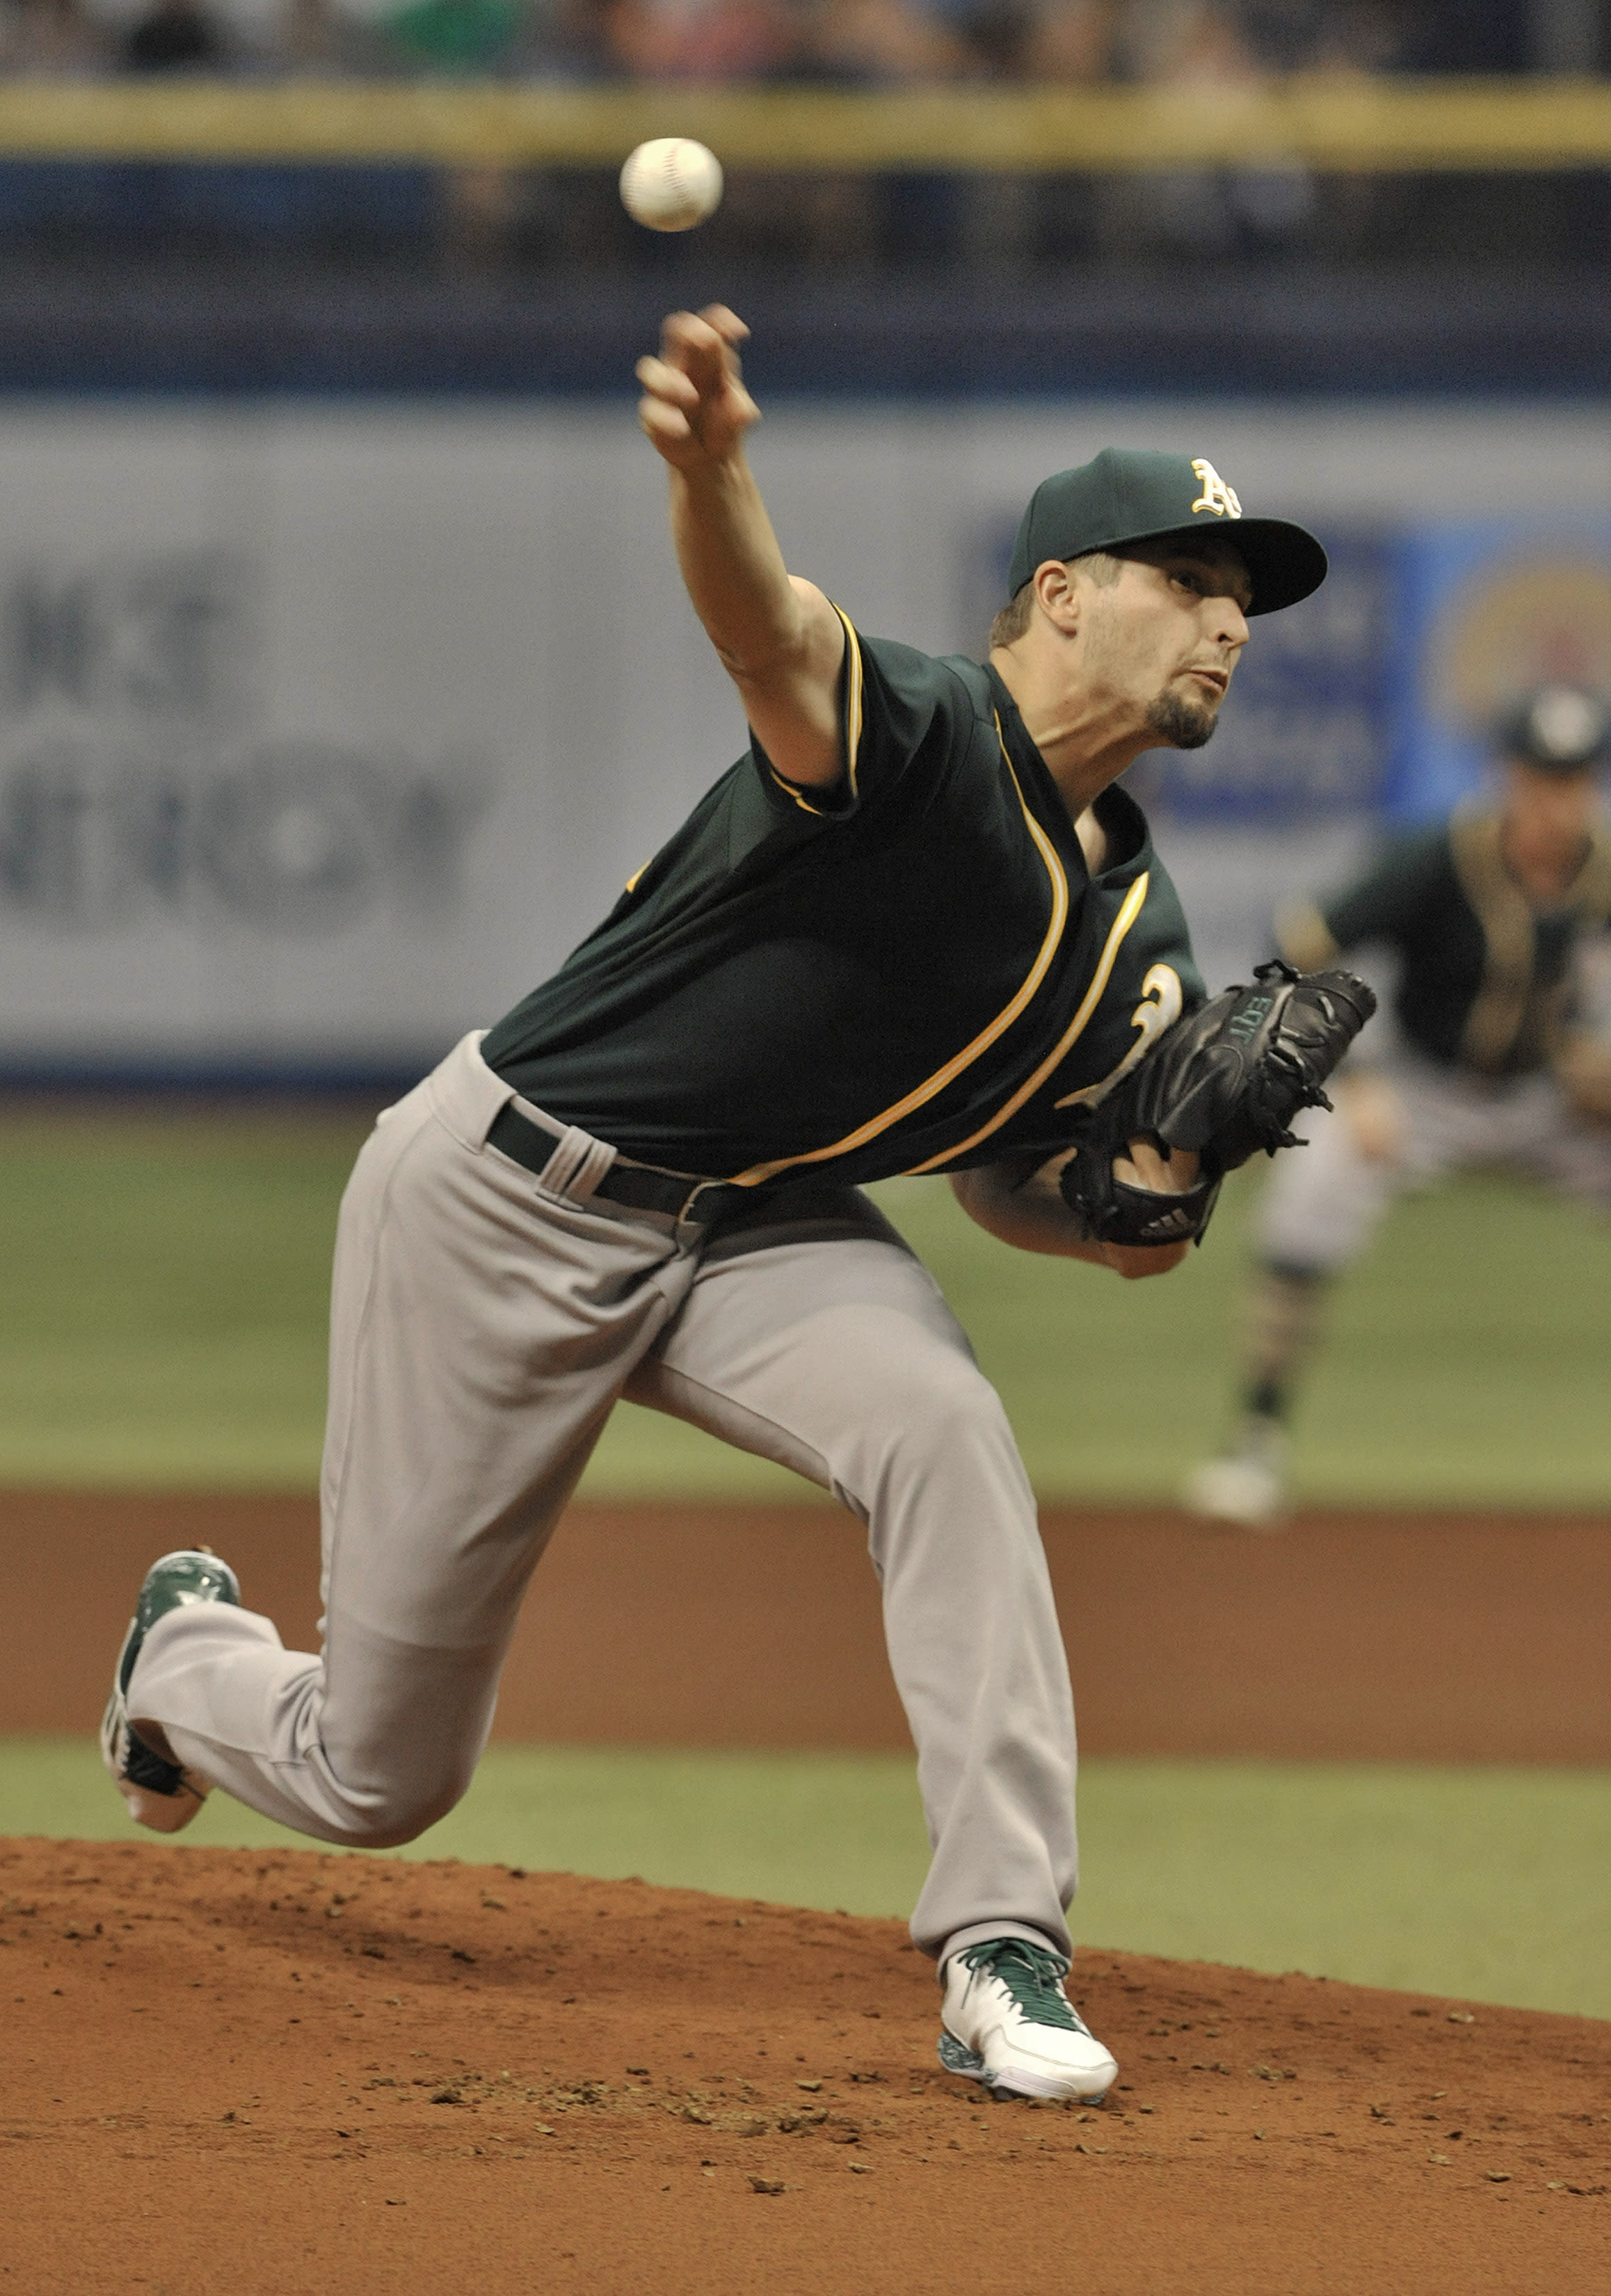 Graveman, Fuld lead A's to 5-0 win over Rays